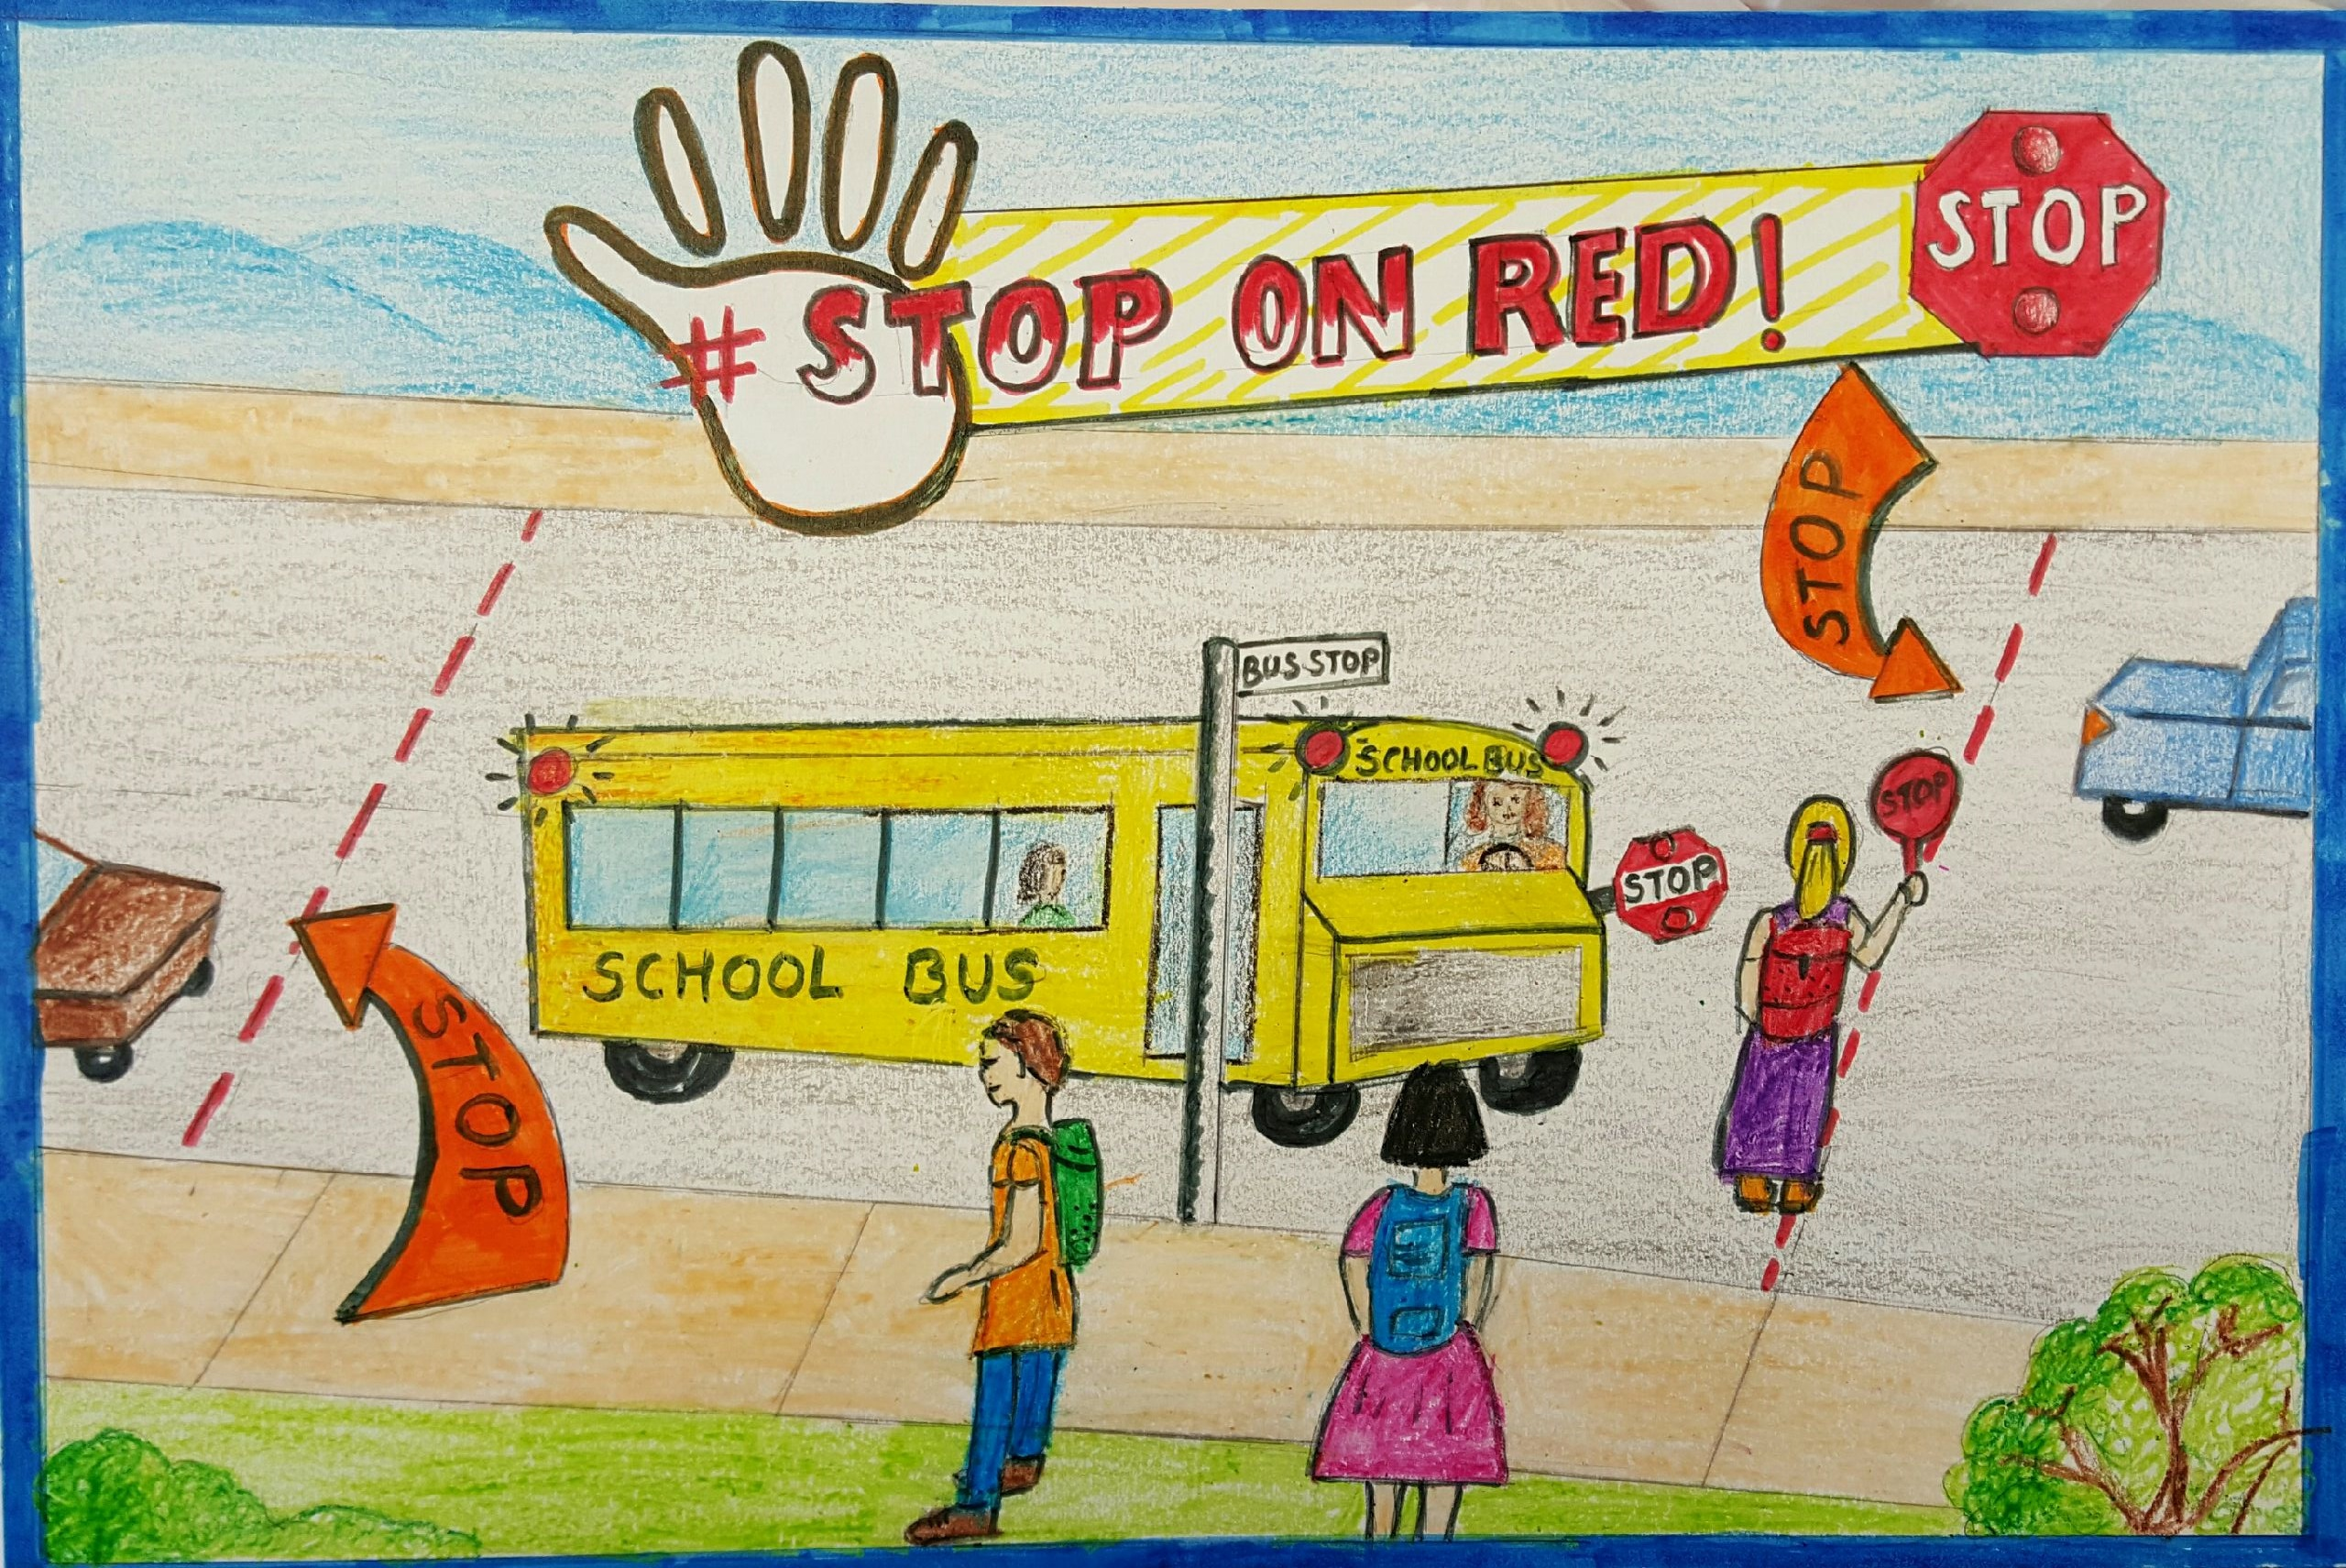 NATIONAL SCHOOL BUS SAFETY POSTER CONTEST | CSD Transportation